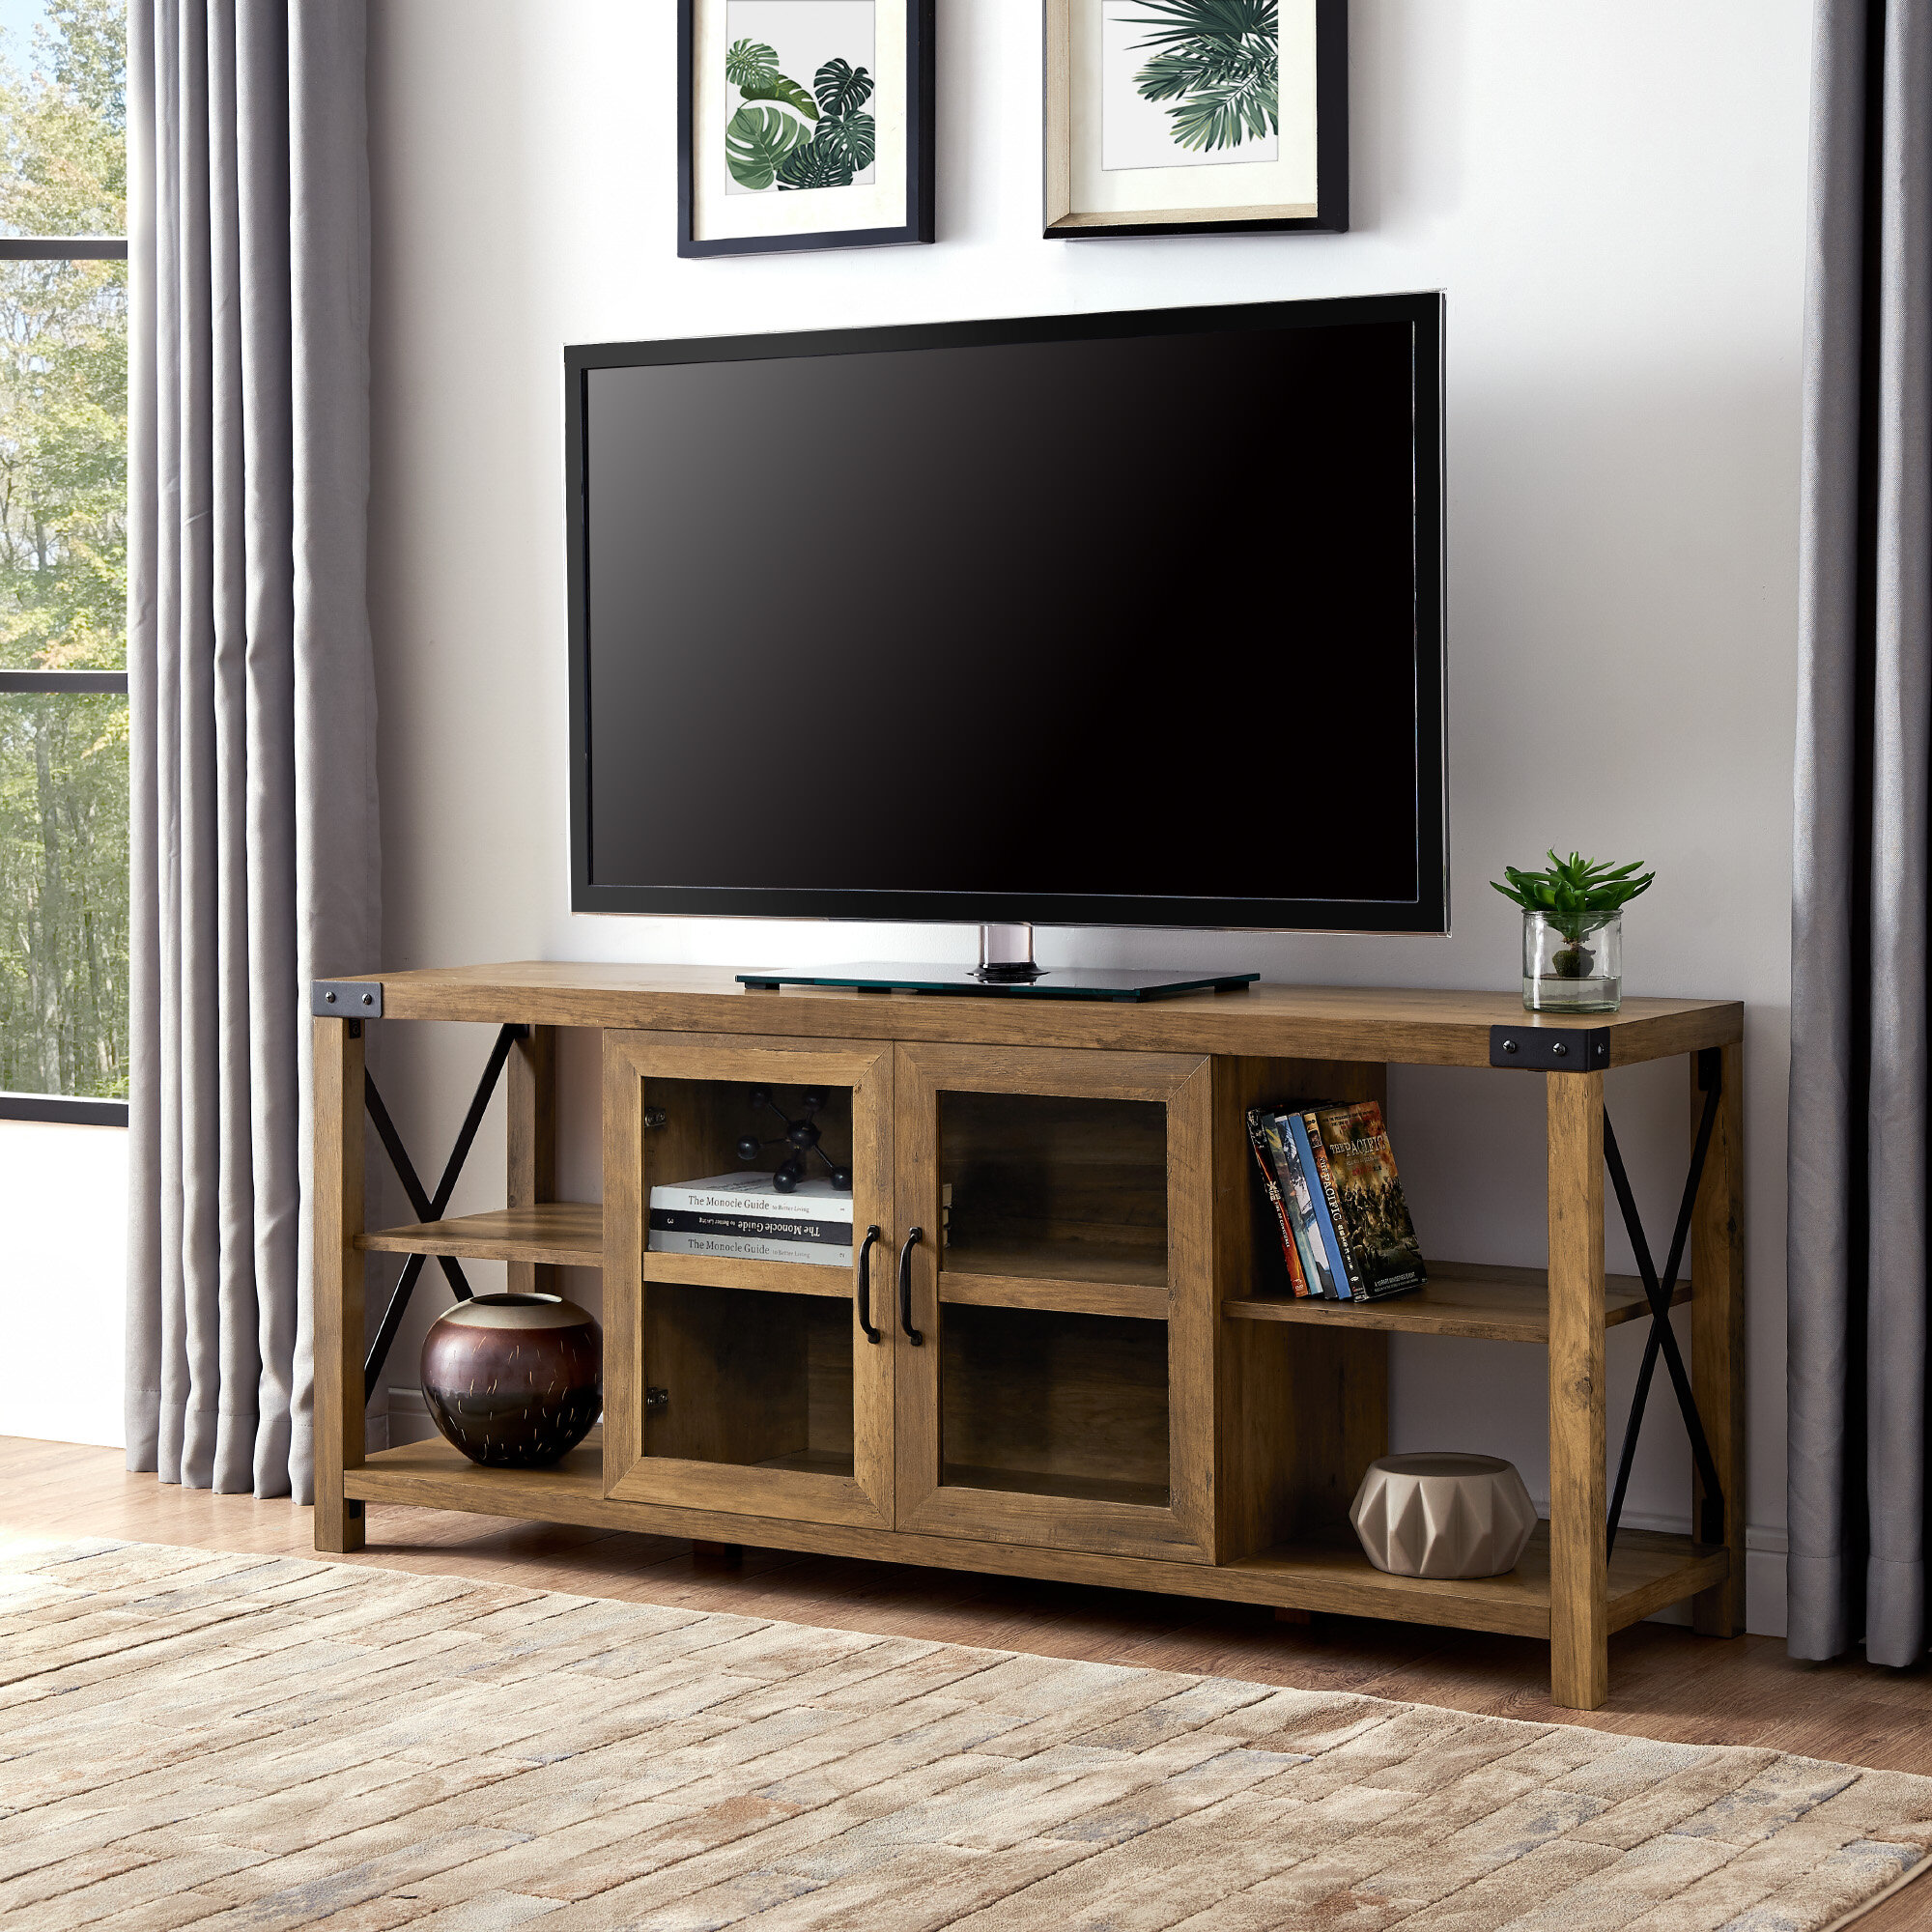 Foundry Select Arsenault Tv Stand For Tvs Up To 65 Reviews Wayfair